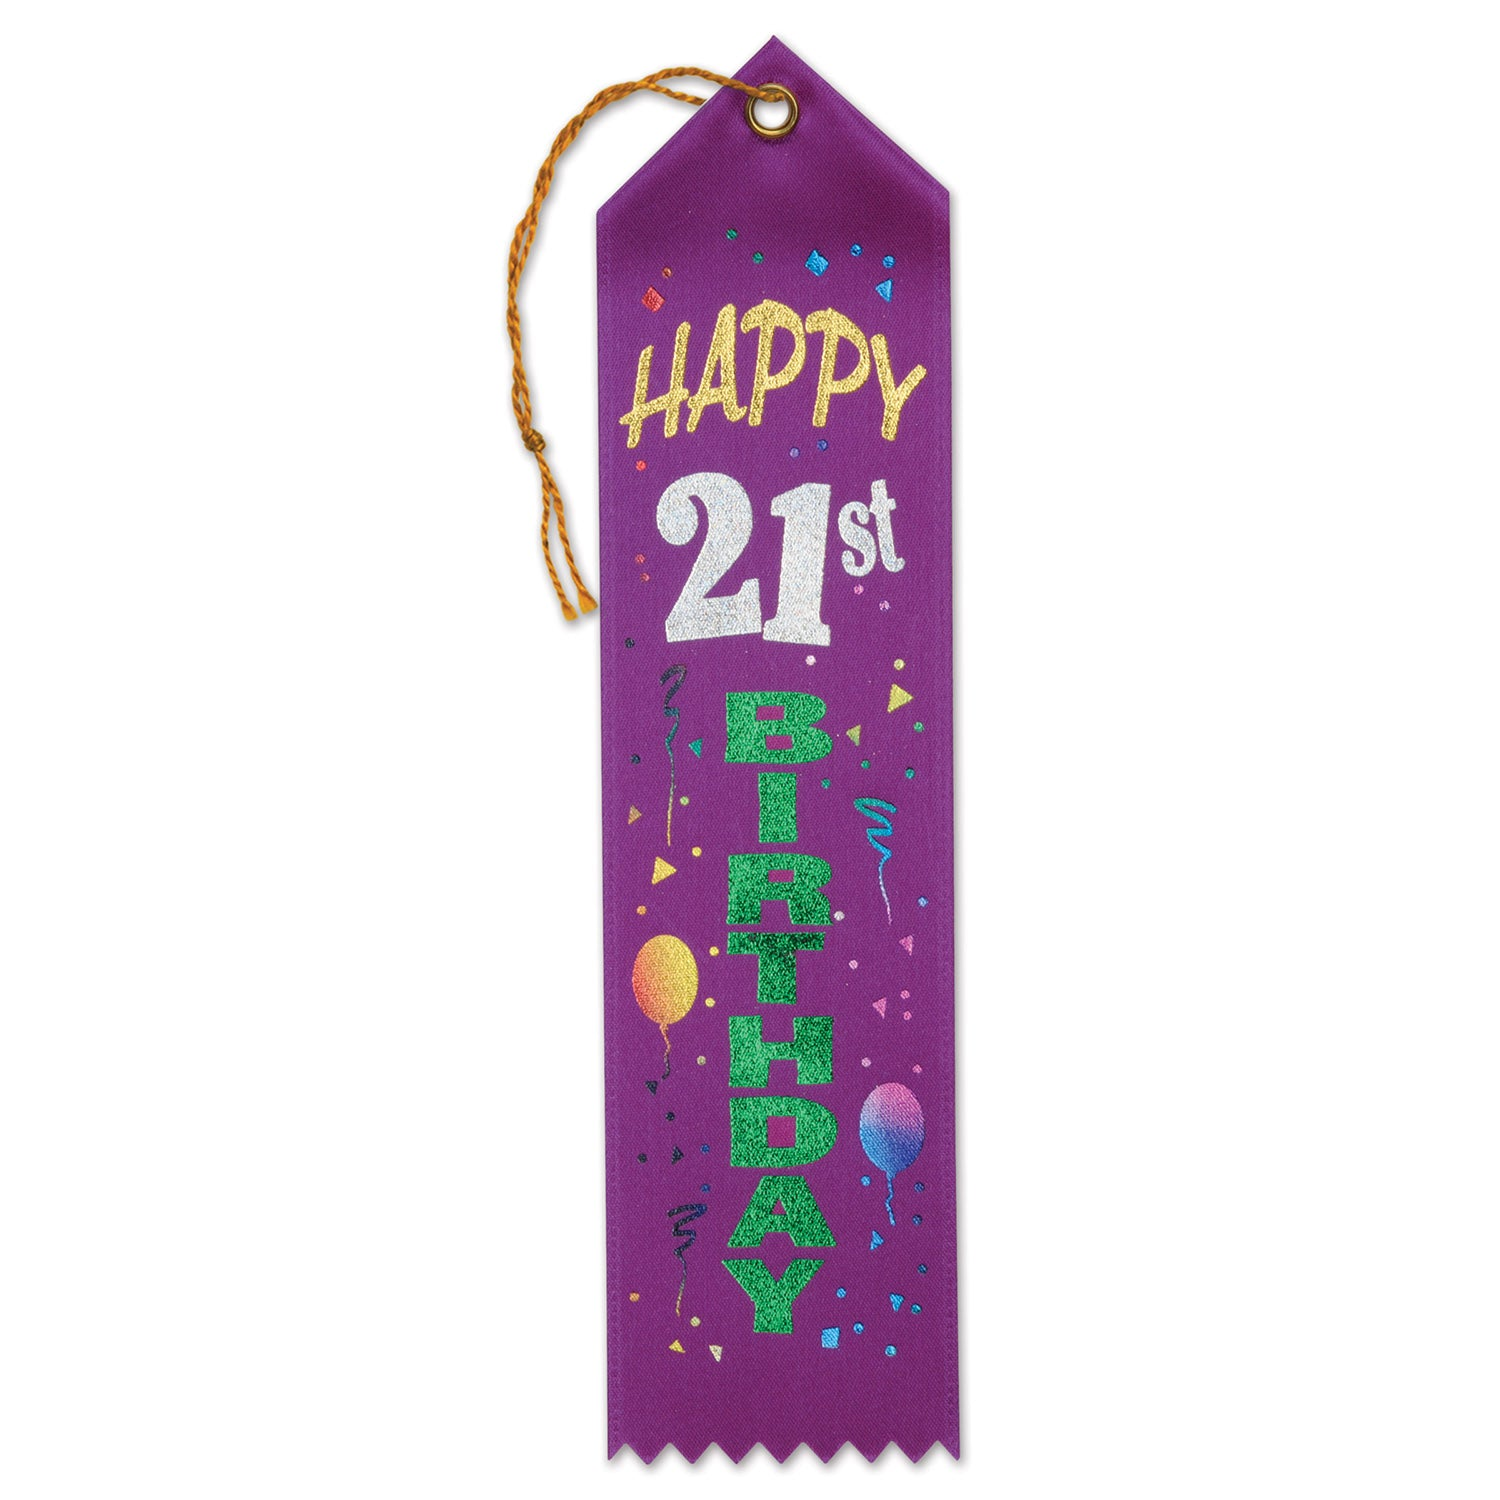 Happy 21st Birthday Award Ribbon by Beistle - 21st Birthday Theme Decorations